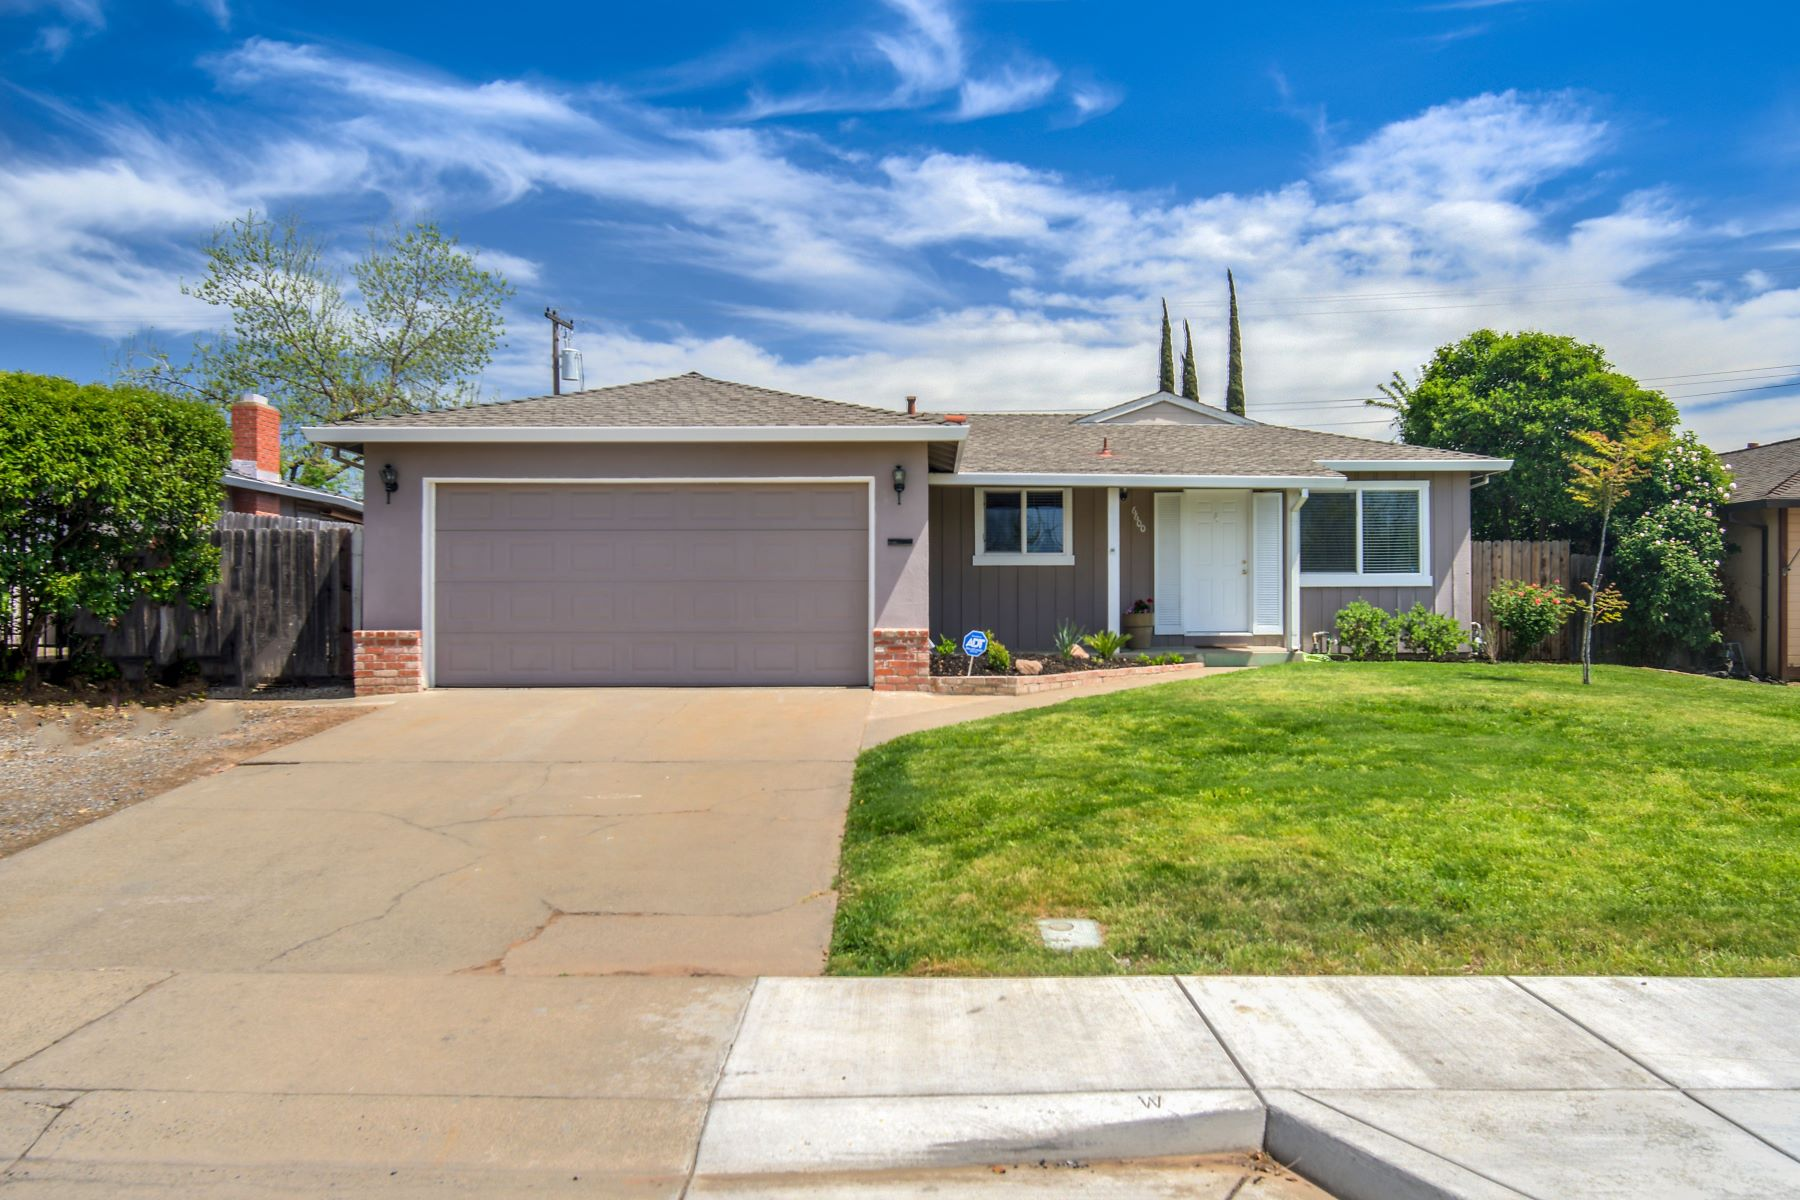 Single Family Homes for Active at 6600 Halifax Street, Citrus Heights, CA 95621 6600 Halifax Street Citrus Heights, California 95621 United States